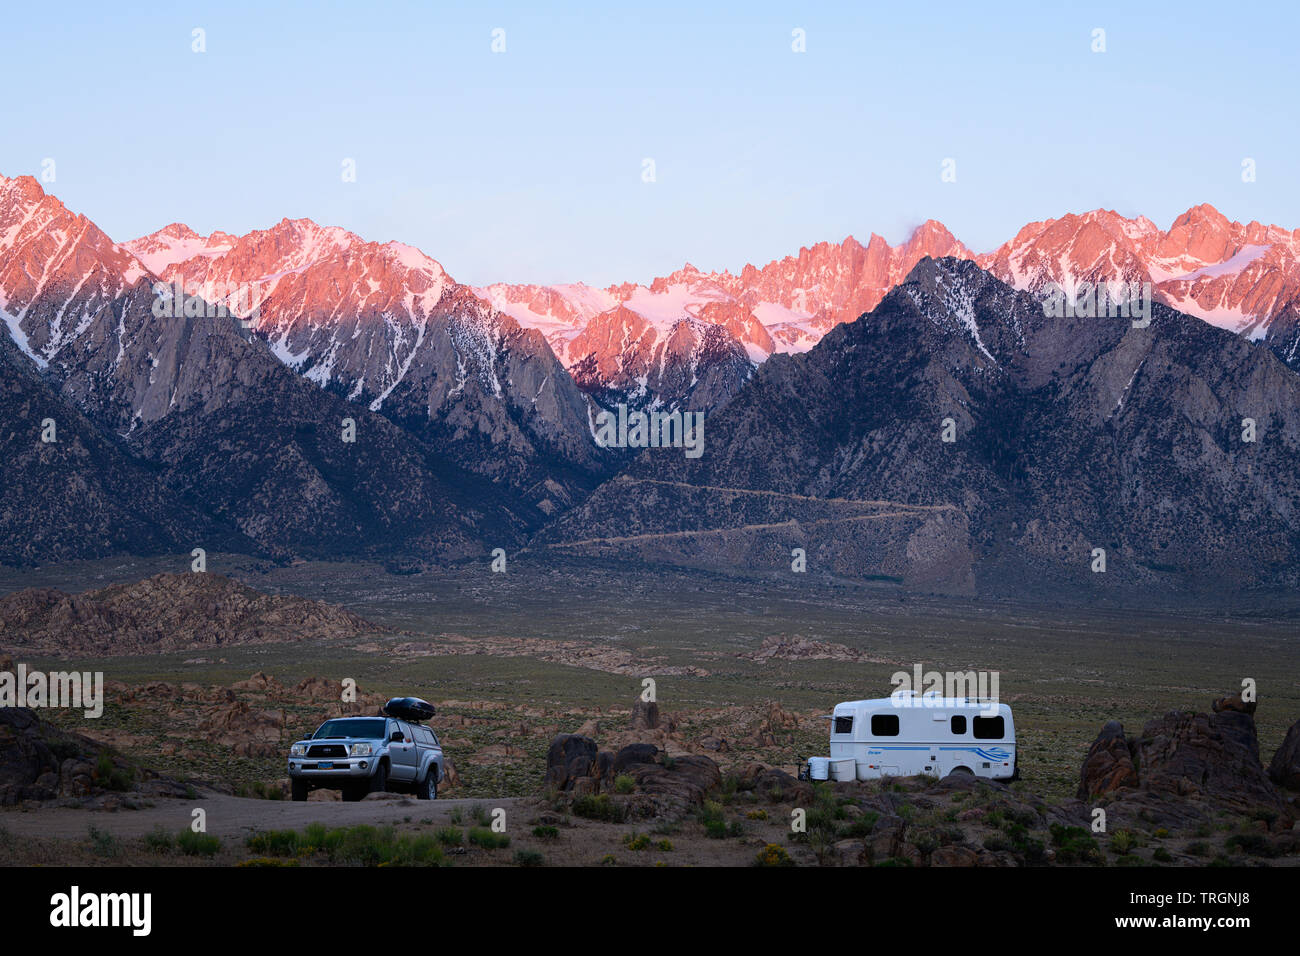 Escape Trailer in the Alabama Hills near Lone Pine, California just below Mt. Whitney in the Eastern Sierra's. - Stock Image